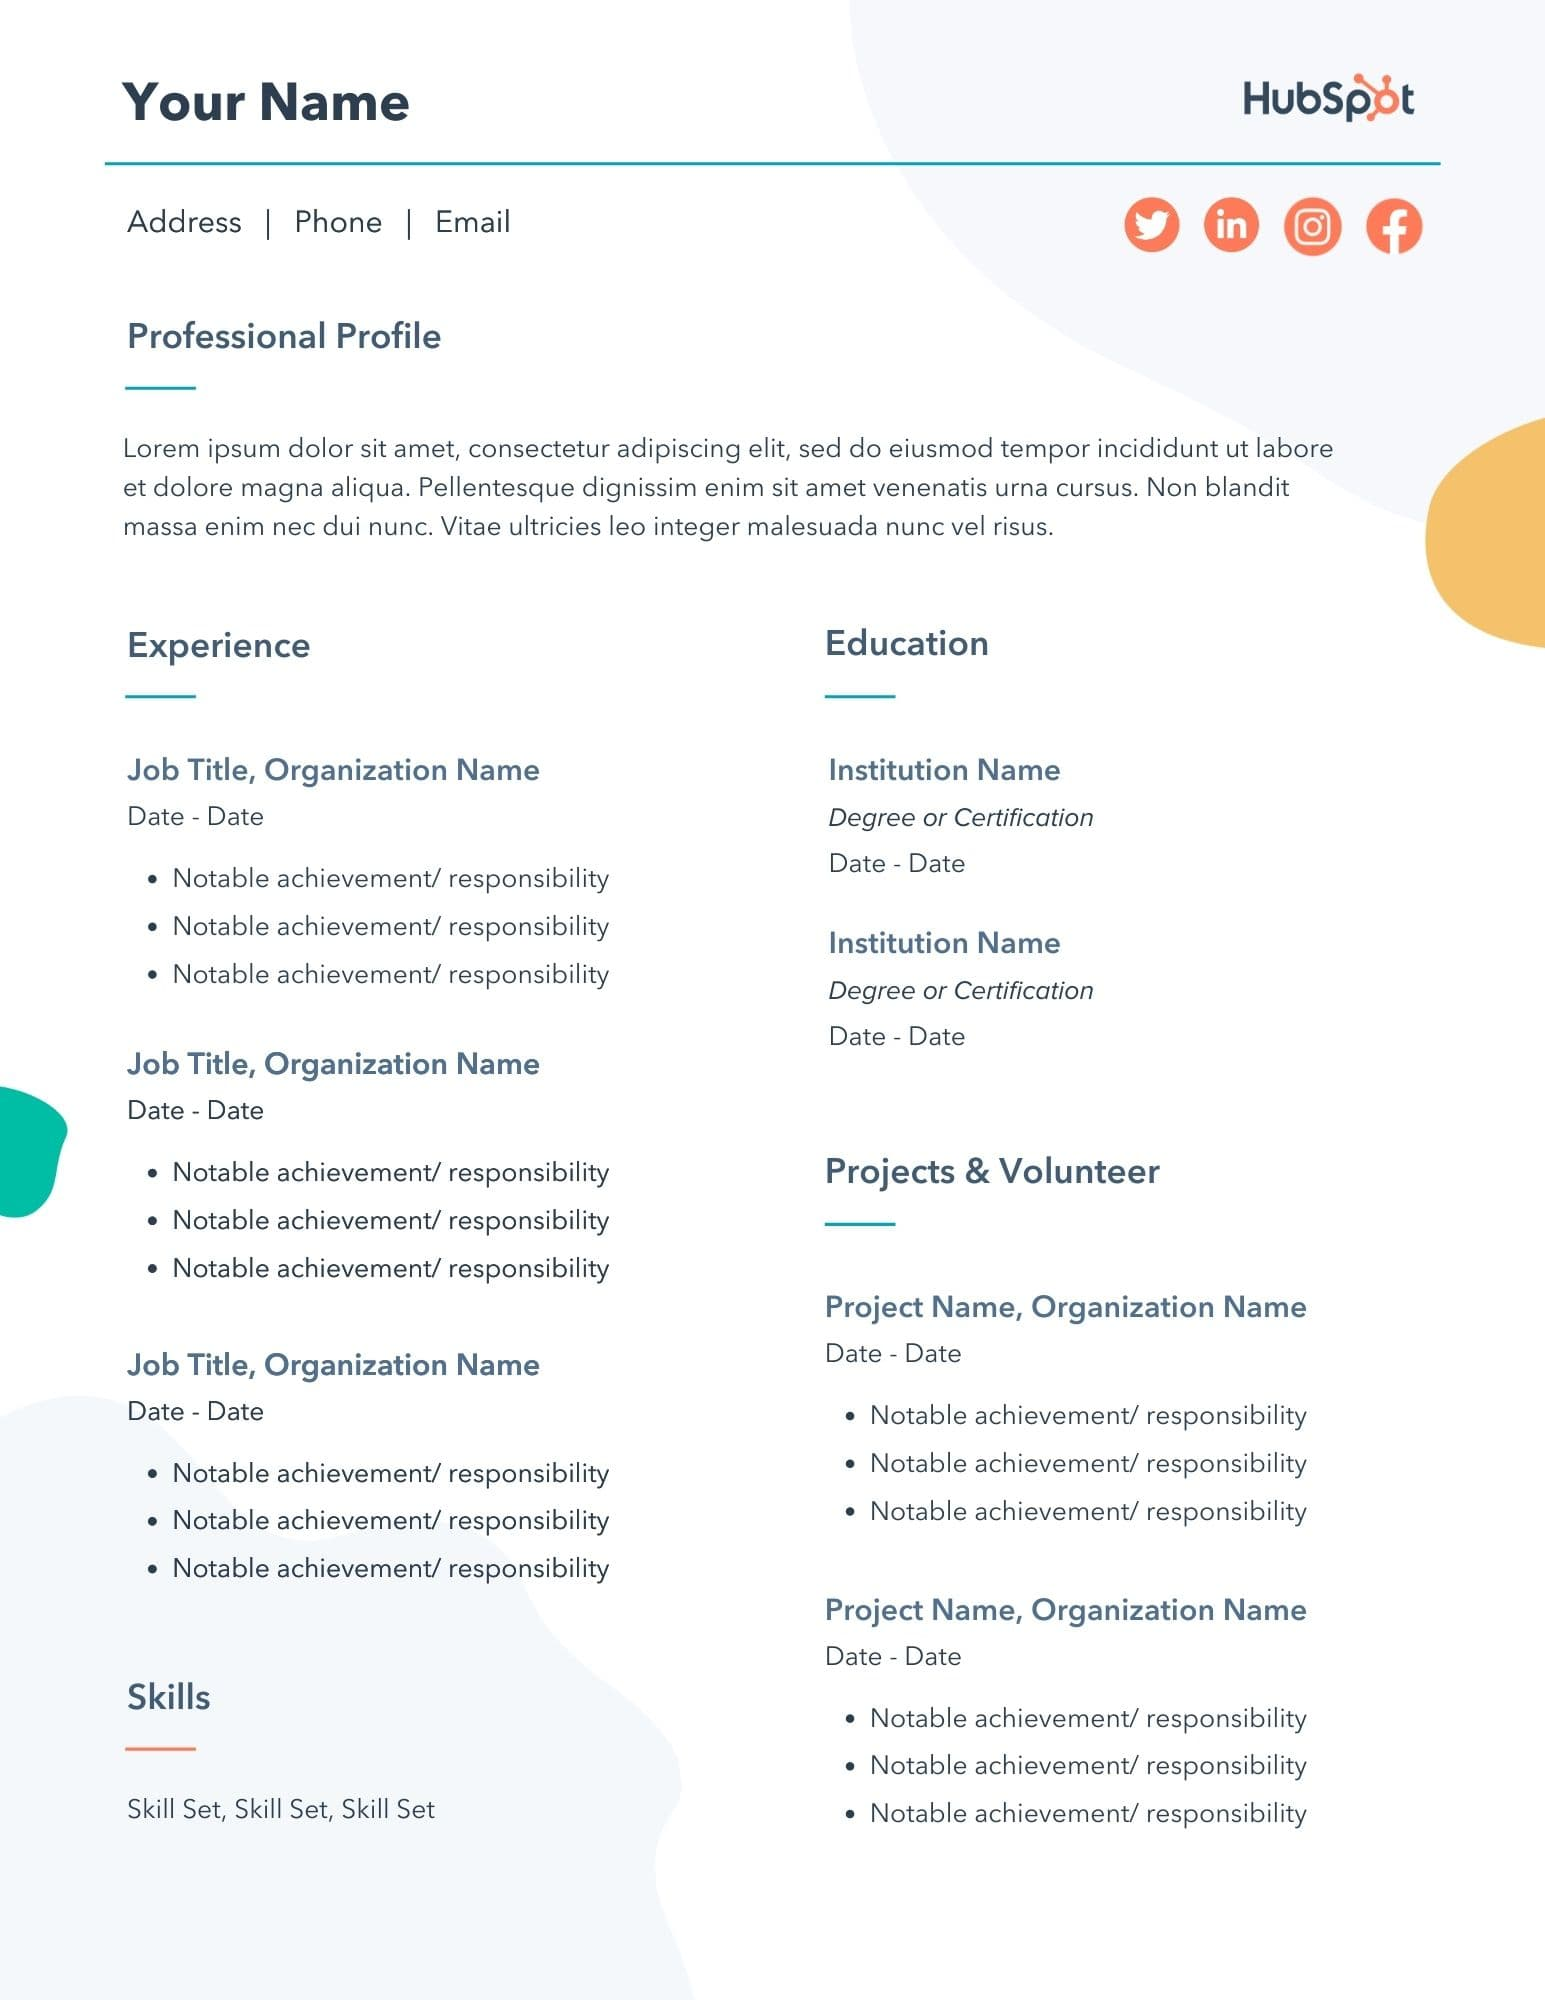 free resume templates for microsoft word to make your own job sample format template Resume Job Resume Sample Format